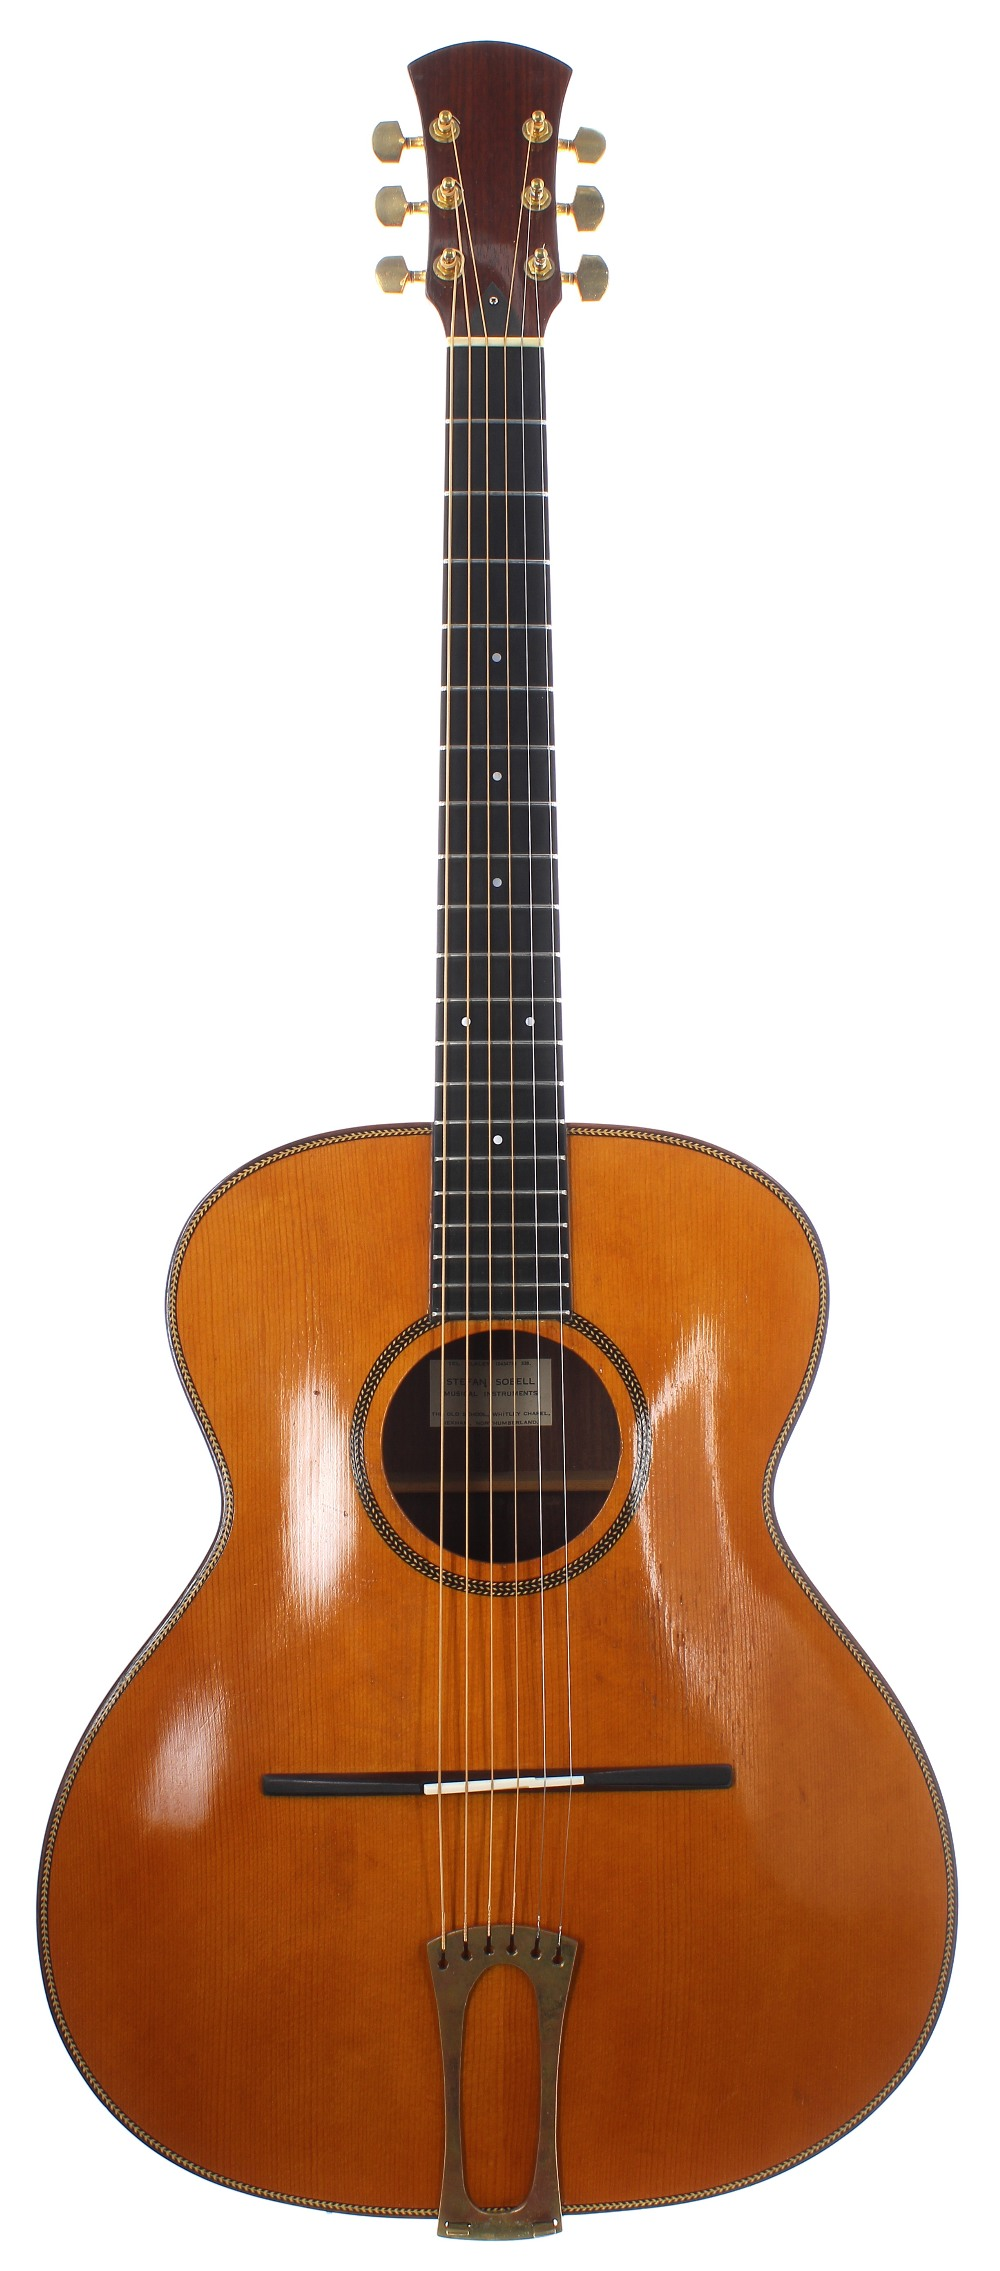 1980s Stefan Sobell archtop acoustic guitar, made in England; Back and sides: east Indian